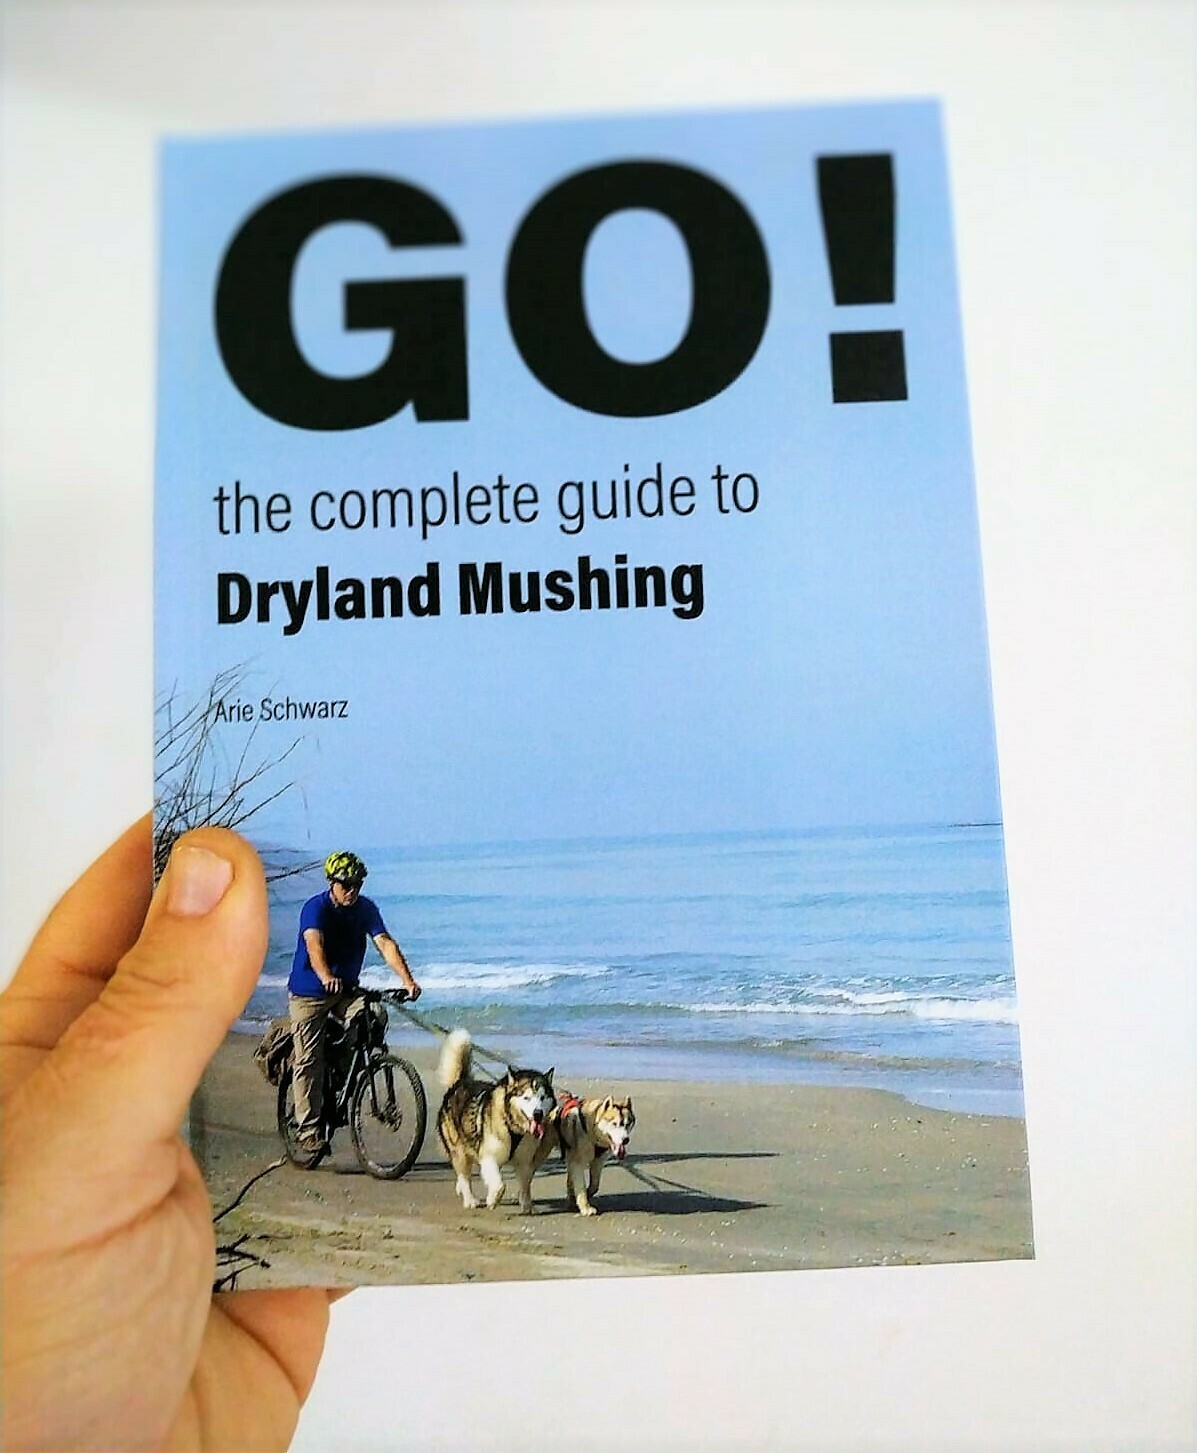 Go! the complete guide to Dryland Mushing, Special Corona offer!